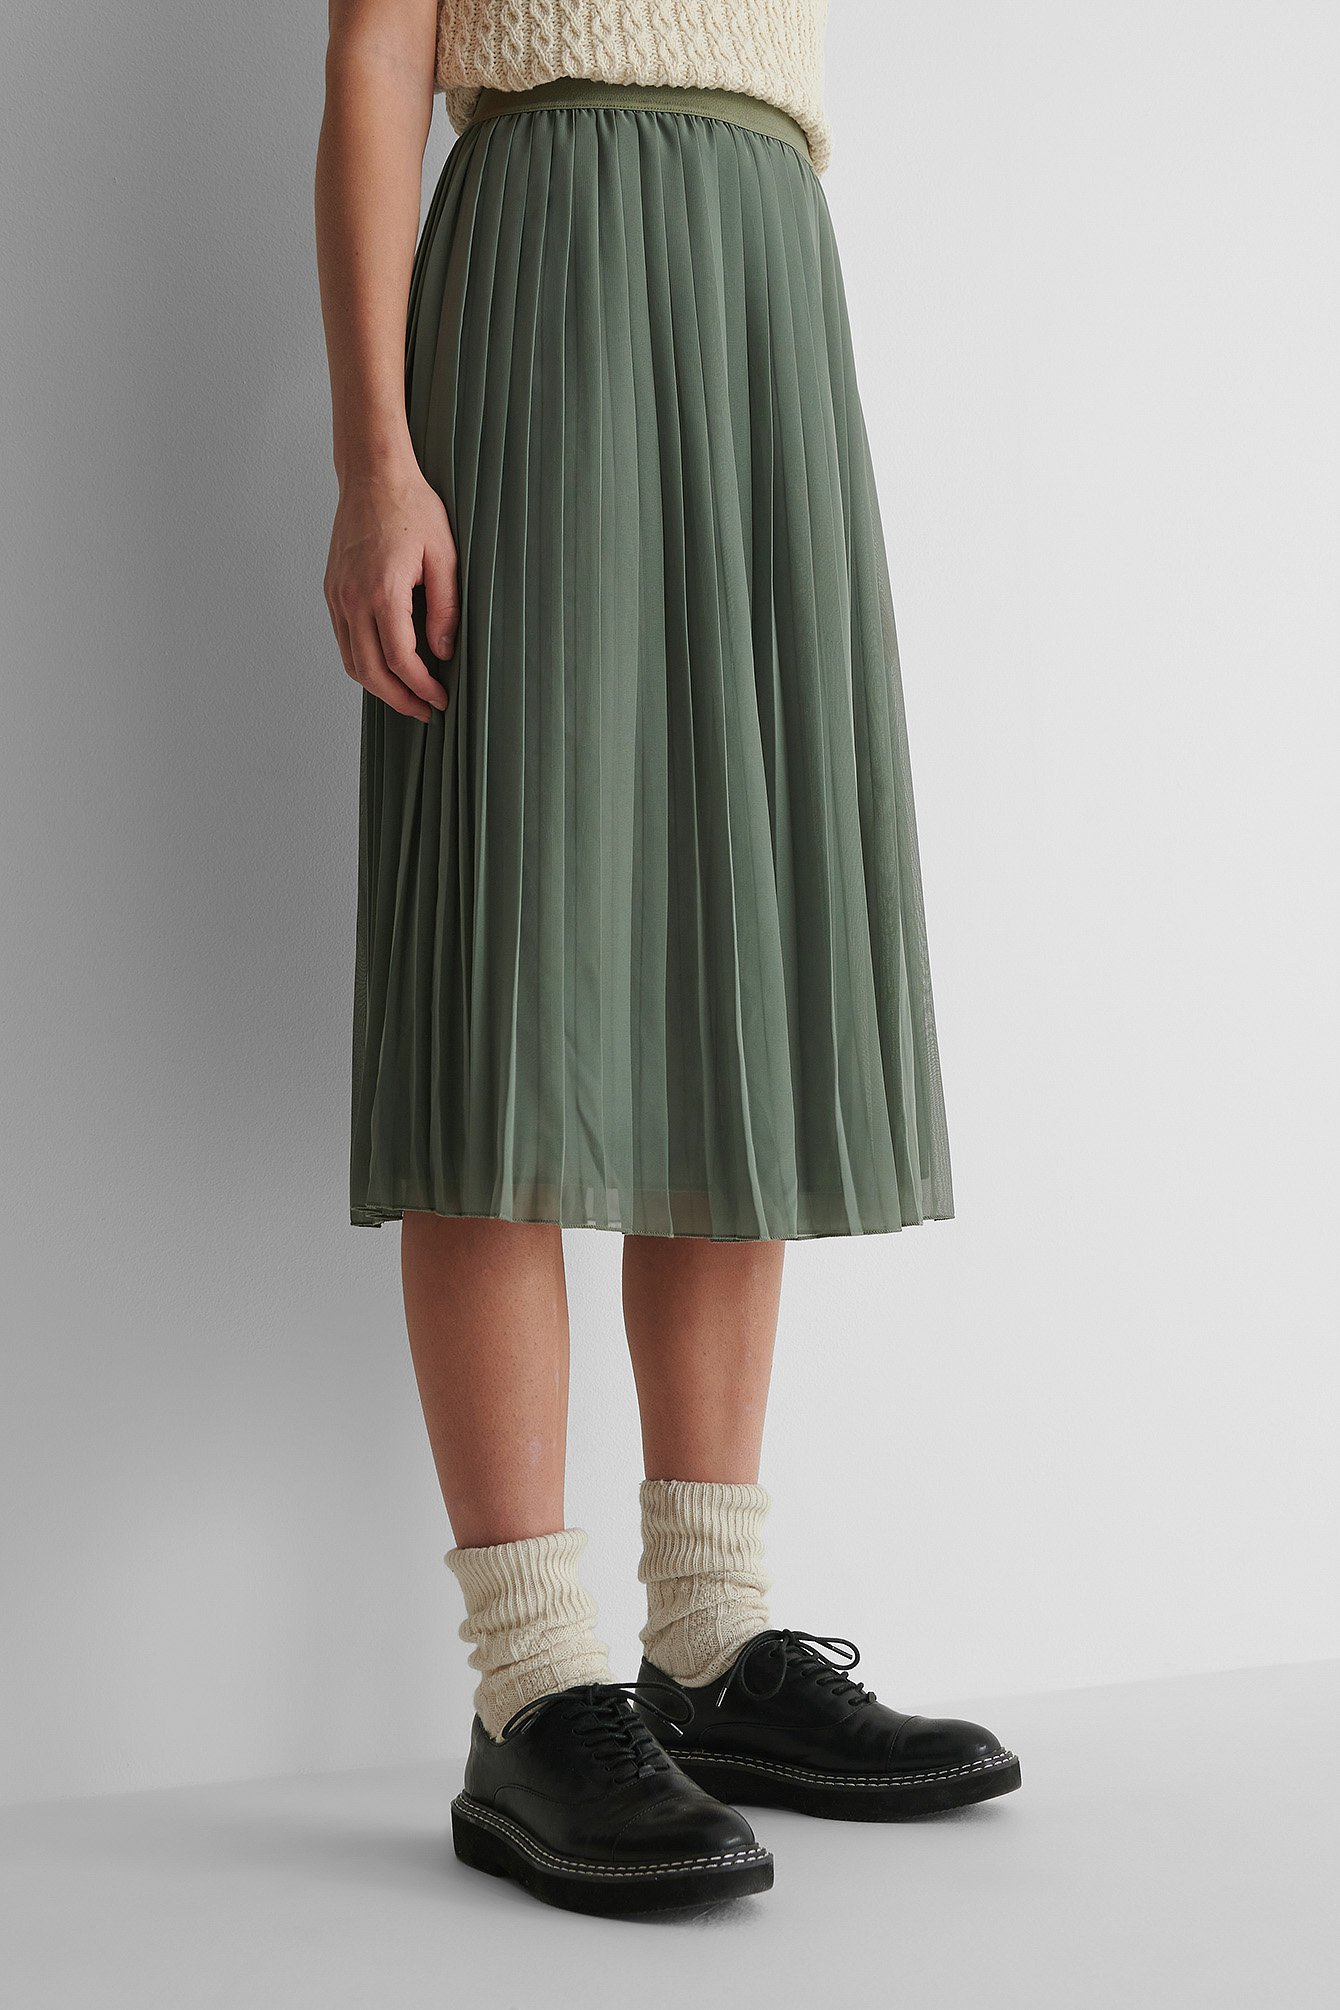 Khaki Midi Pleated Skirt